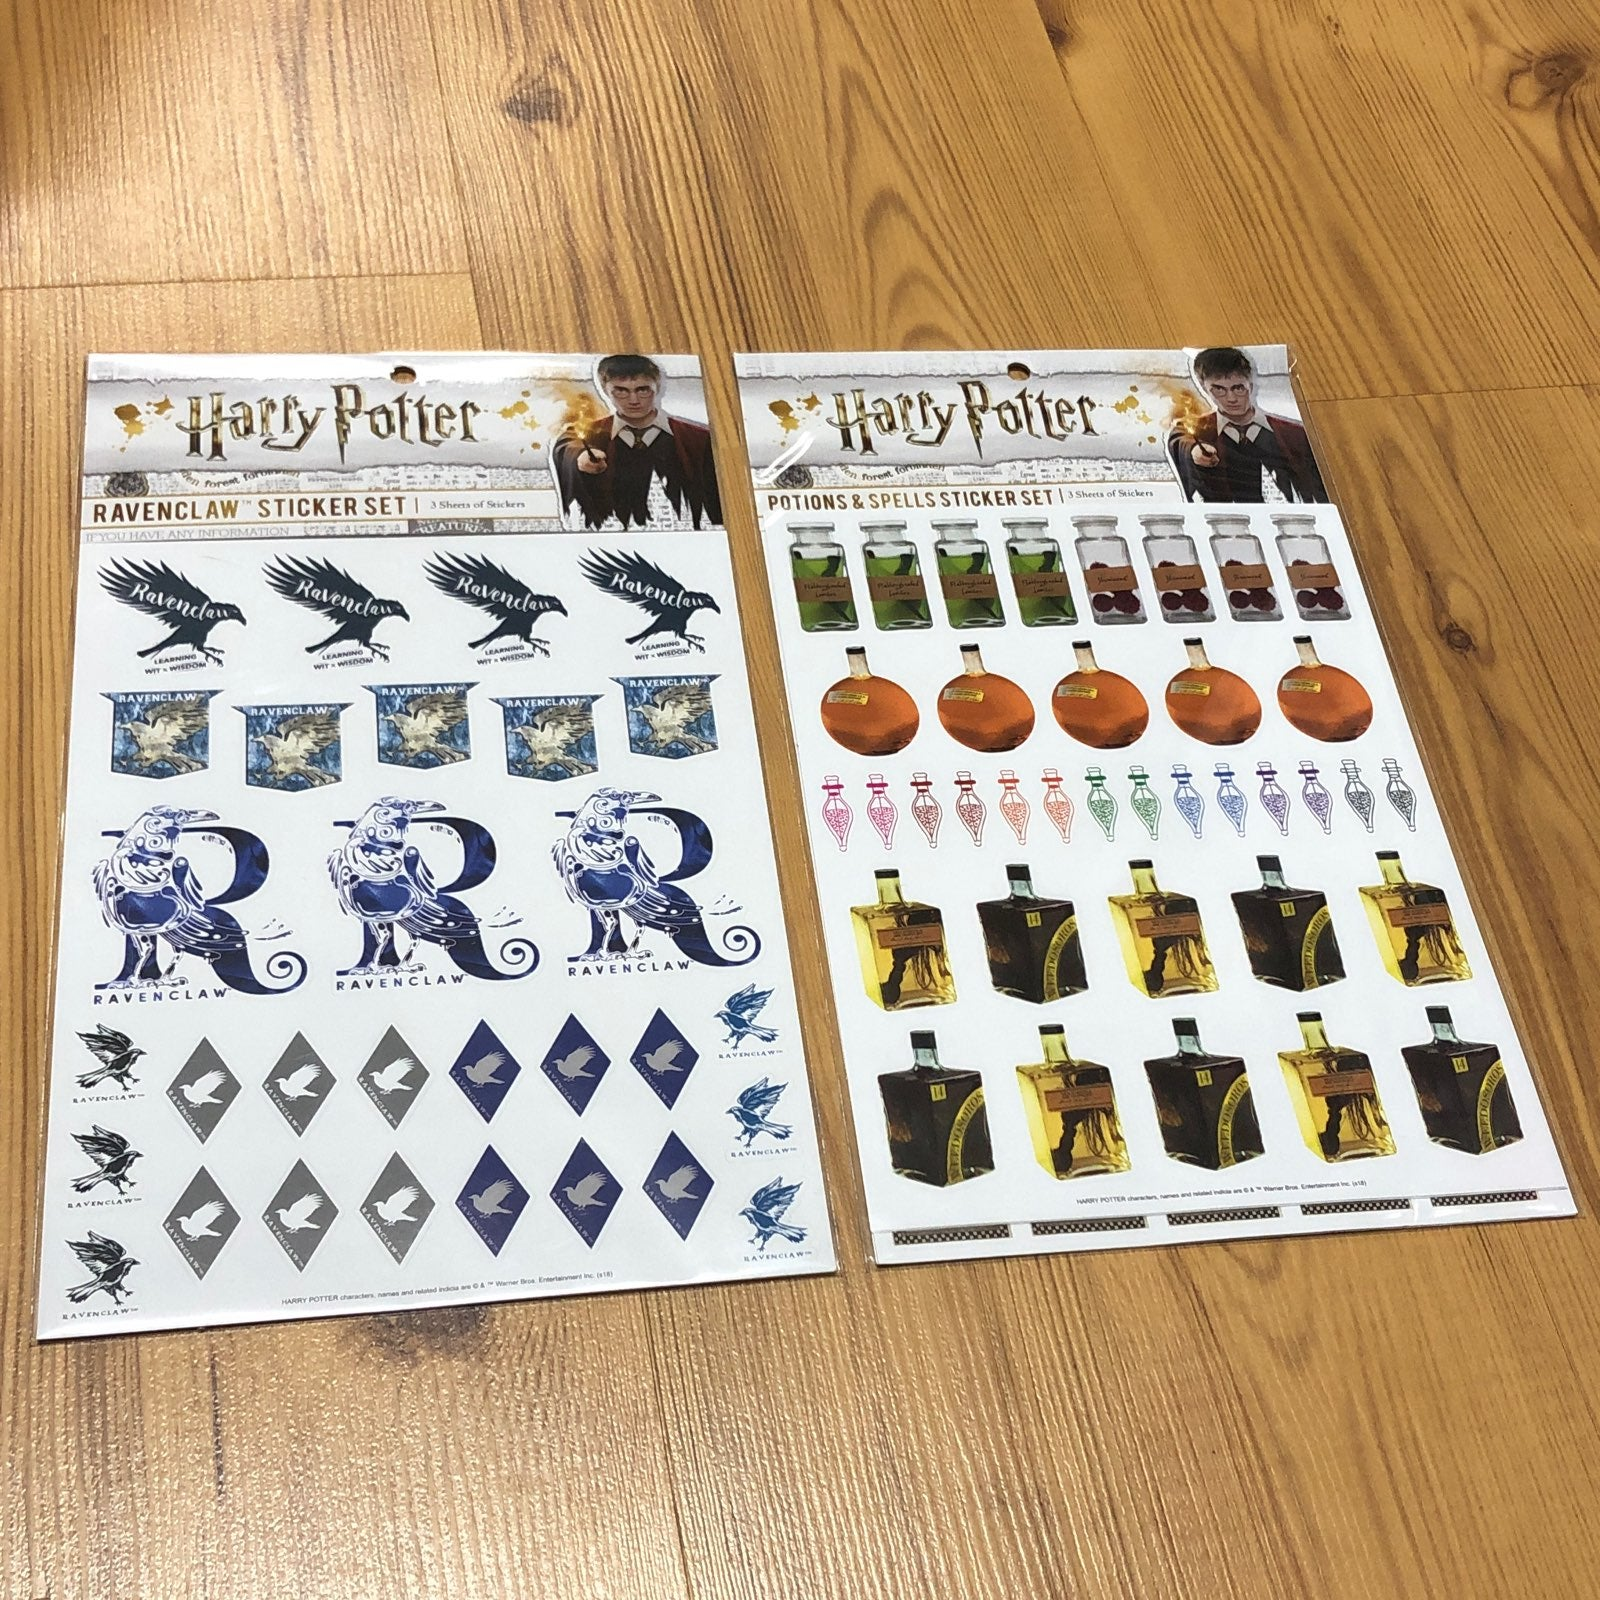 Harry Potter Ravenclaw, Potions stickers